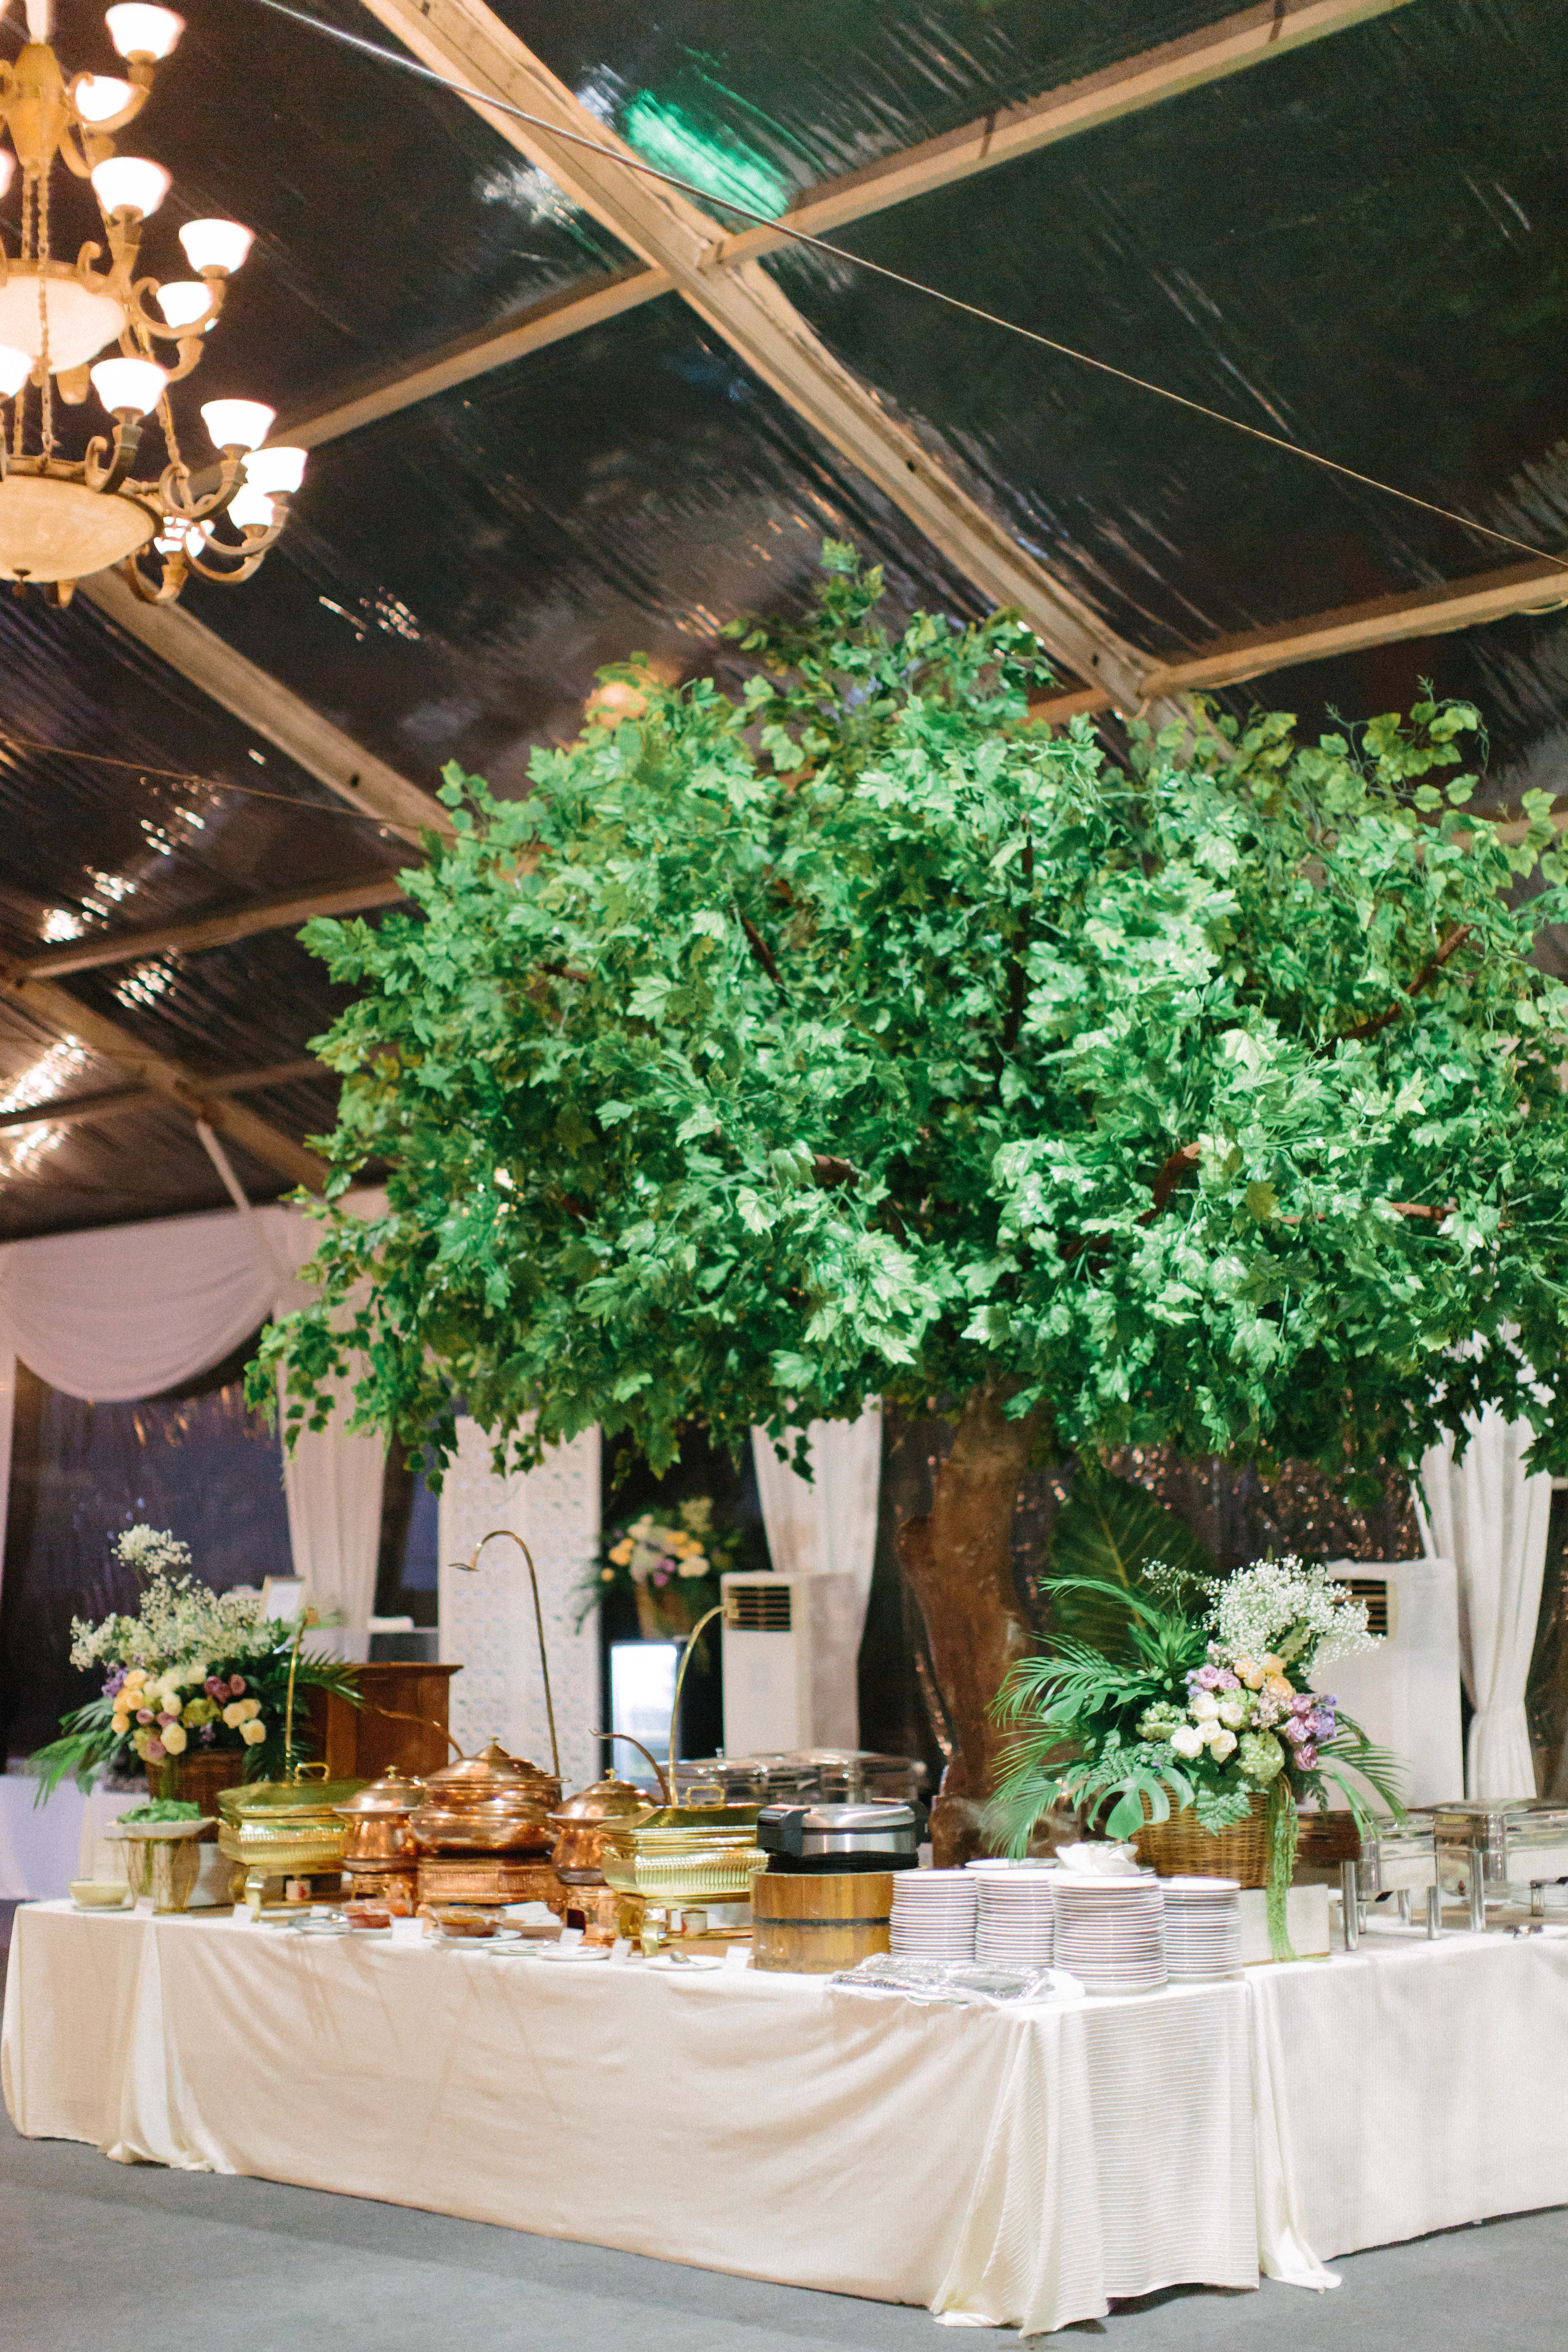 wedding dinner buffet tables with center tree